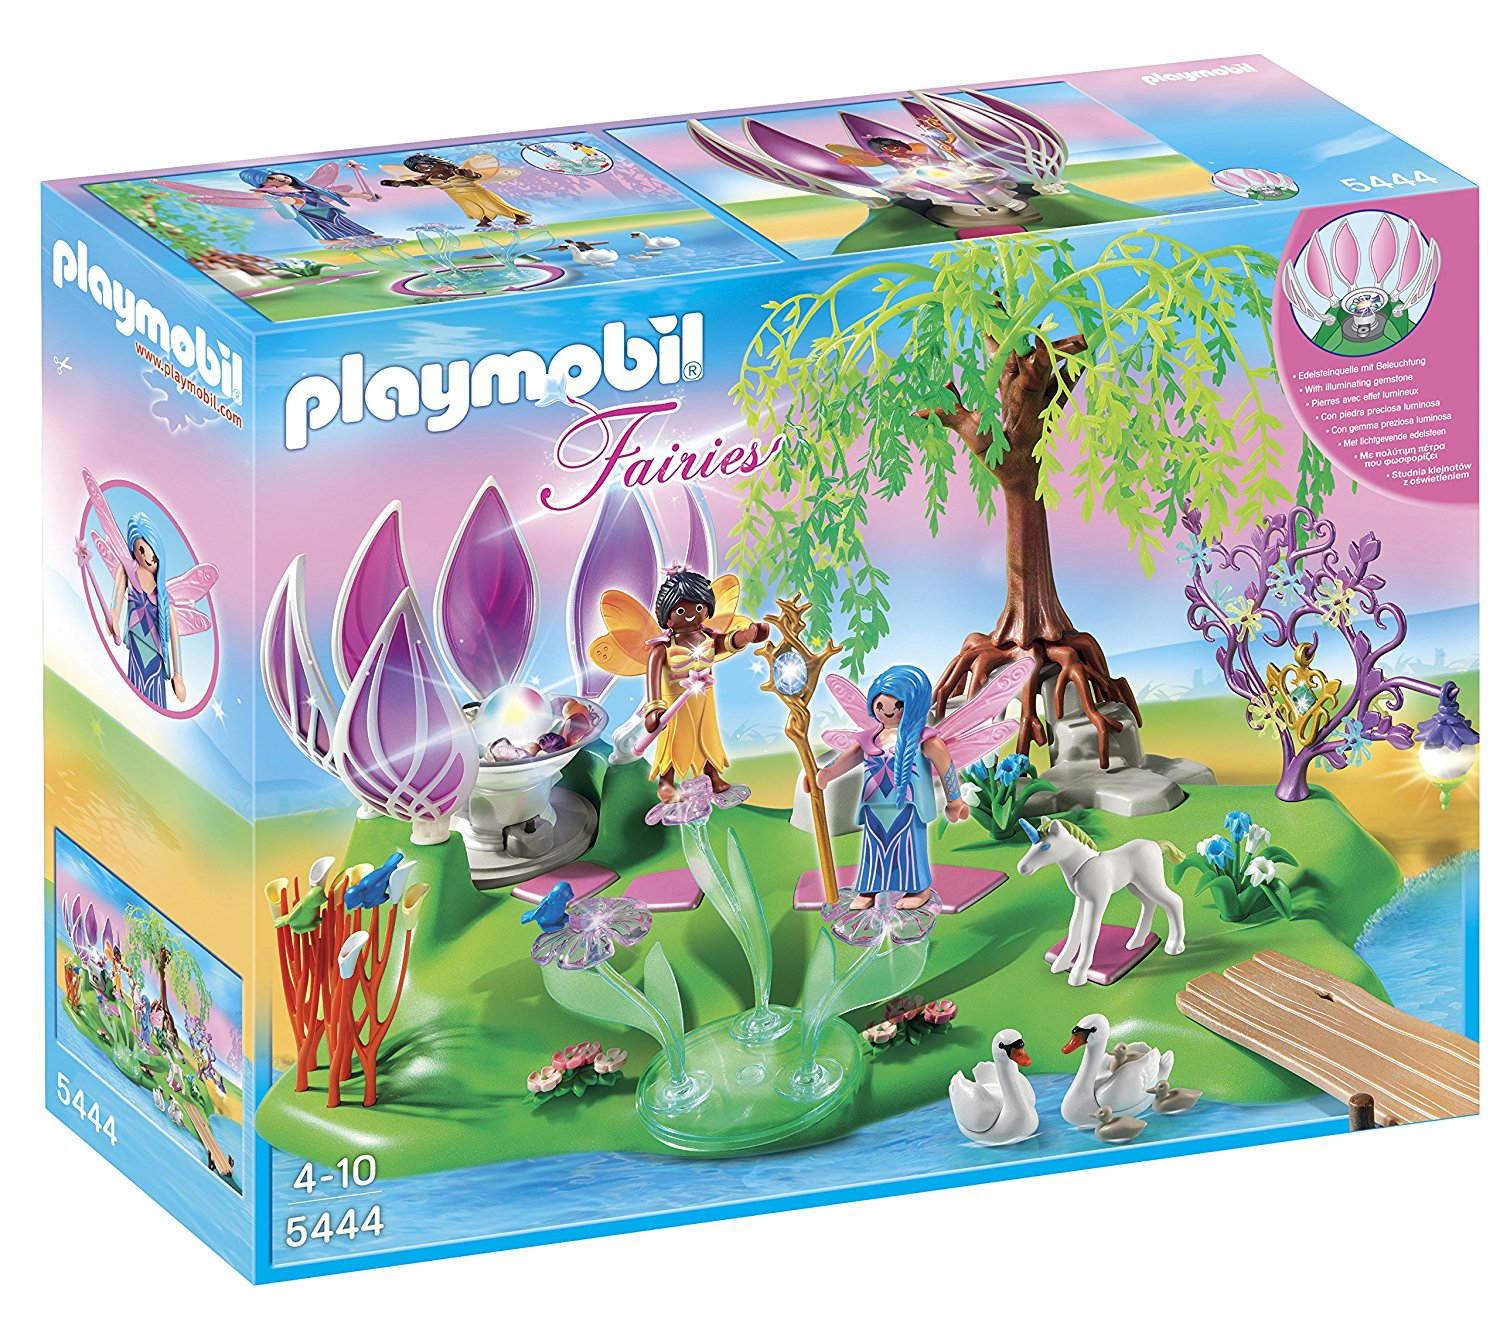 PLAYMOBIL Fairy Island with Jewel Fountain Playset by Photographic Research Organization, Inc